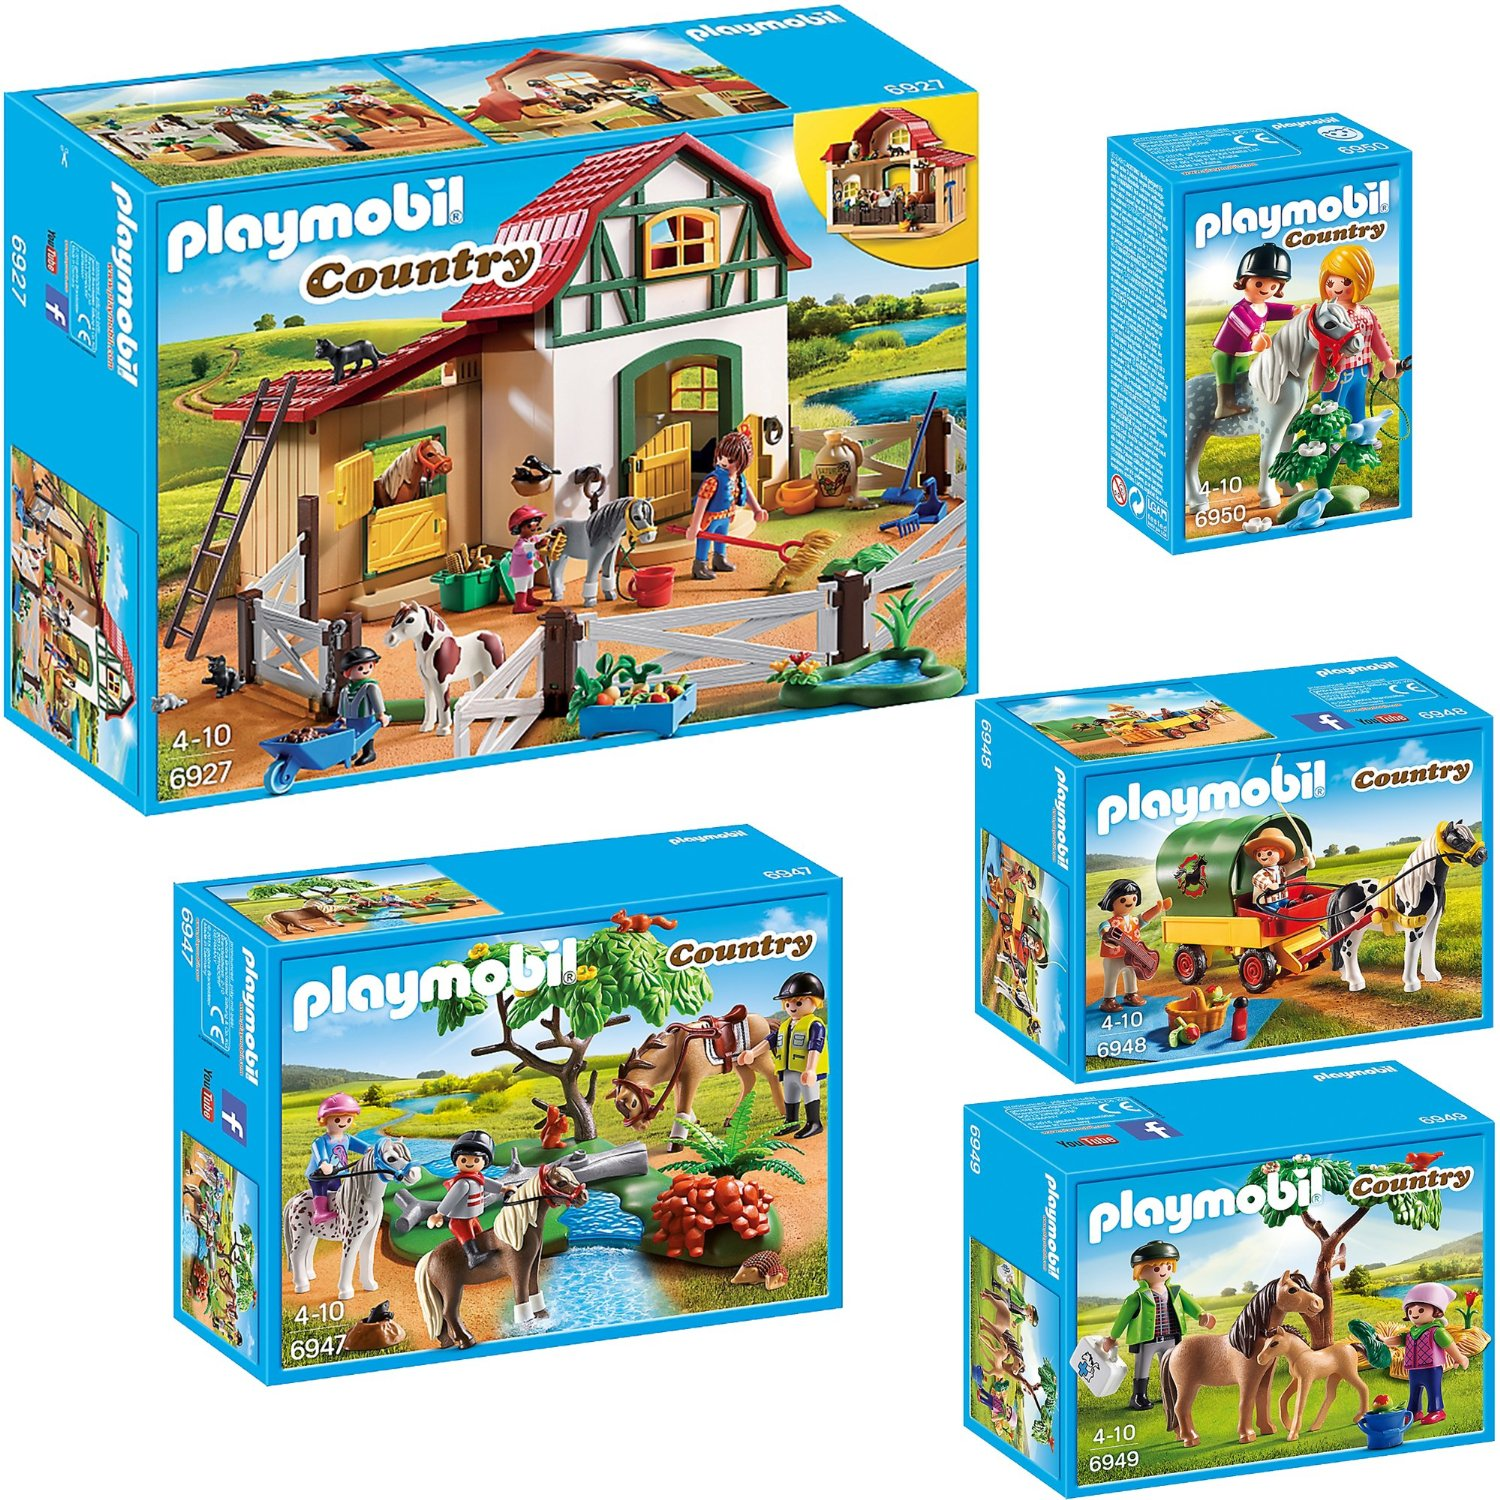 Smuk Διάφορα Προϊόντα : Playmobil Country μεγάλο σετ 6927 6947 6948 IN-13